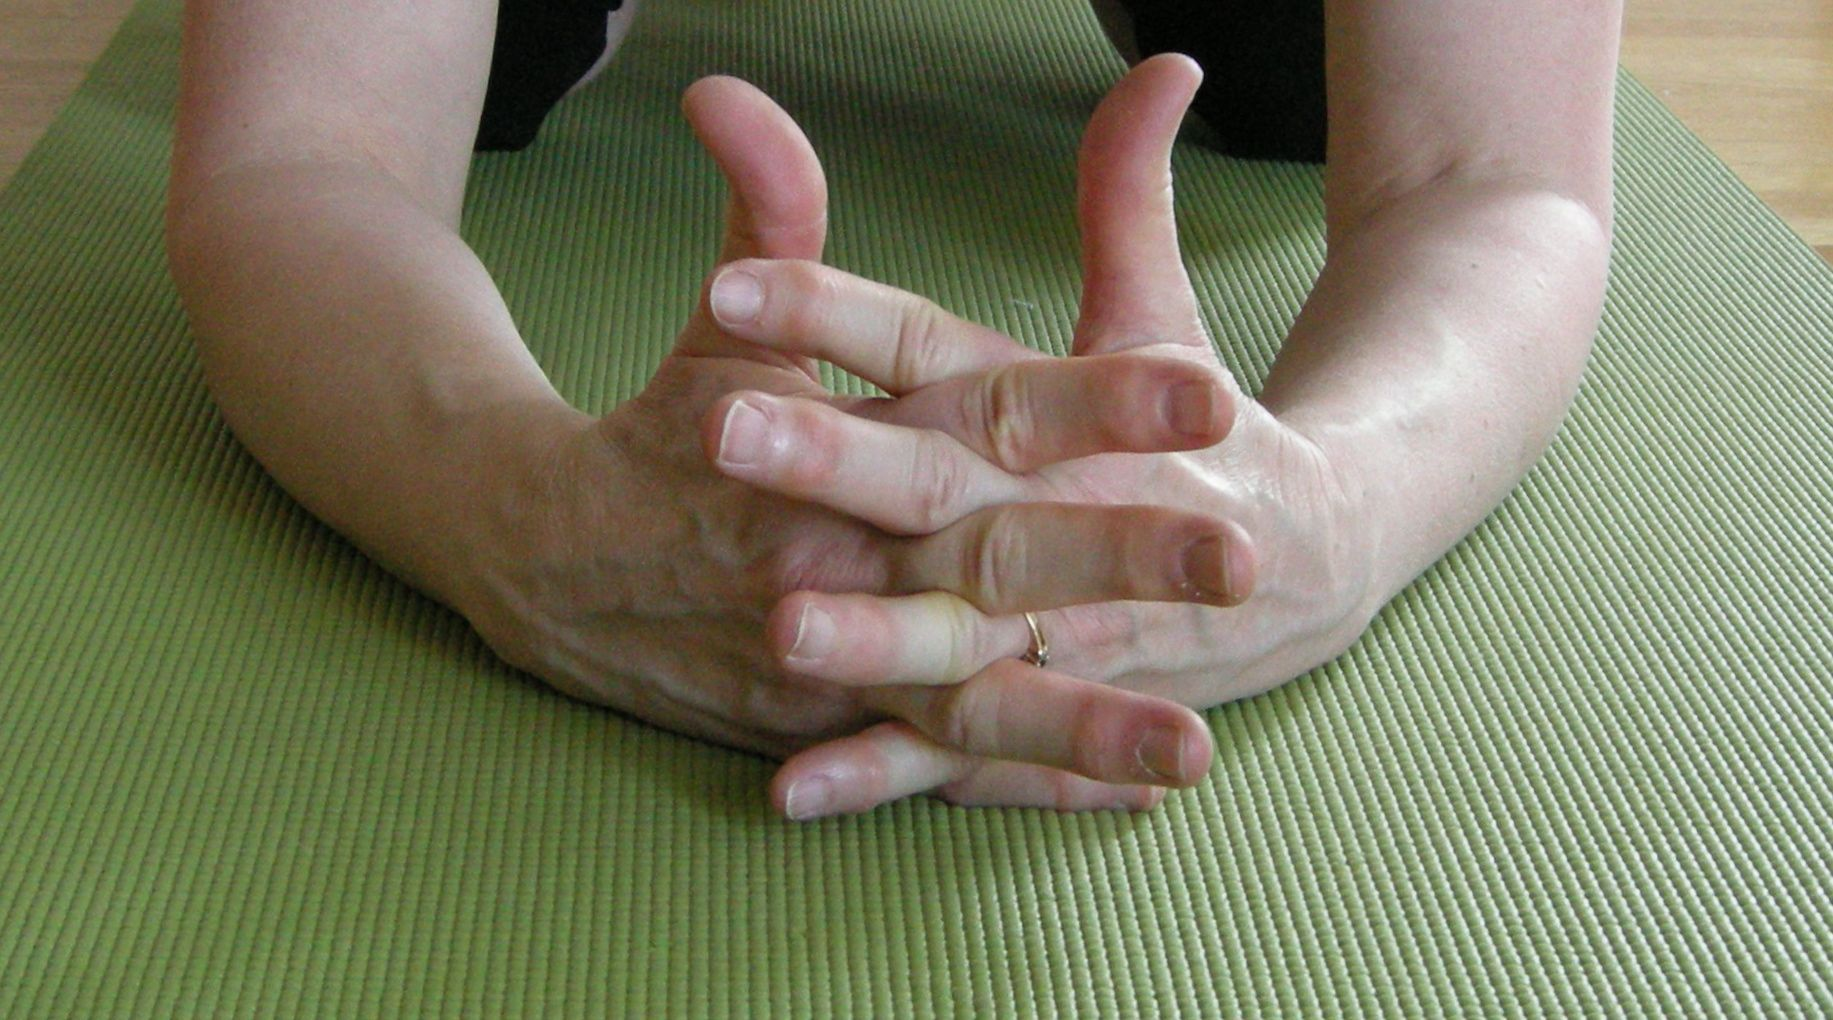 Stretch your fingers away from each other